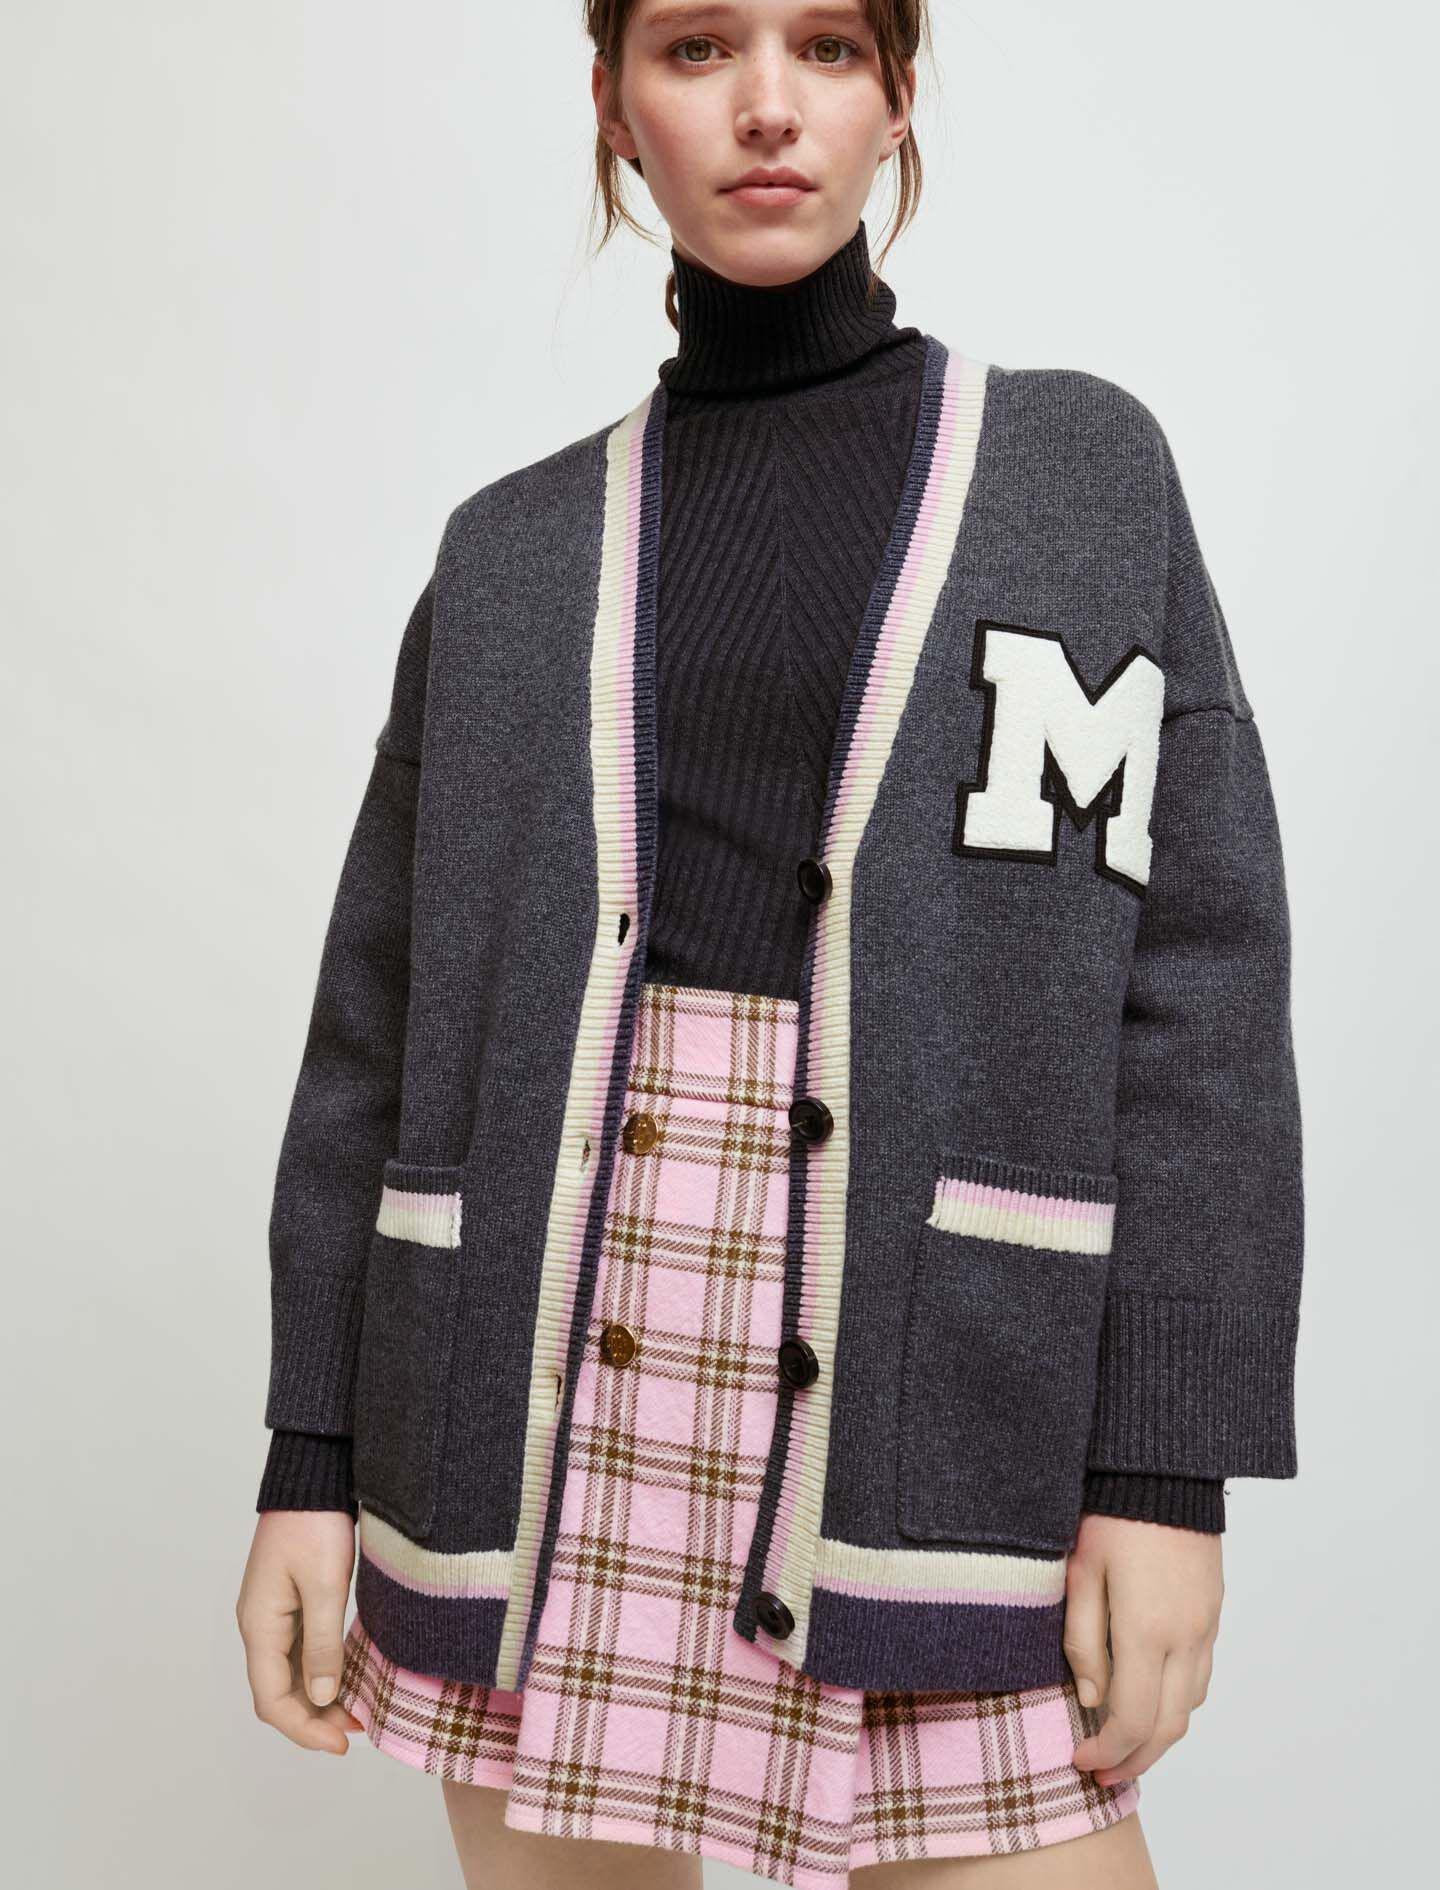 COLLEGE CARDIGAN WITH M PATCH